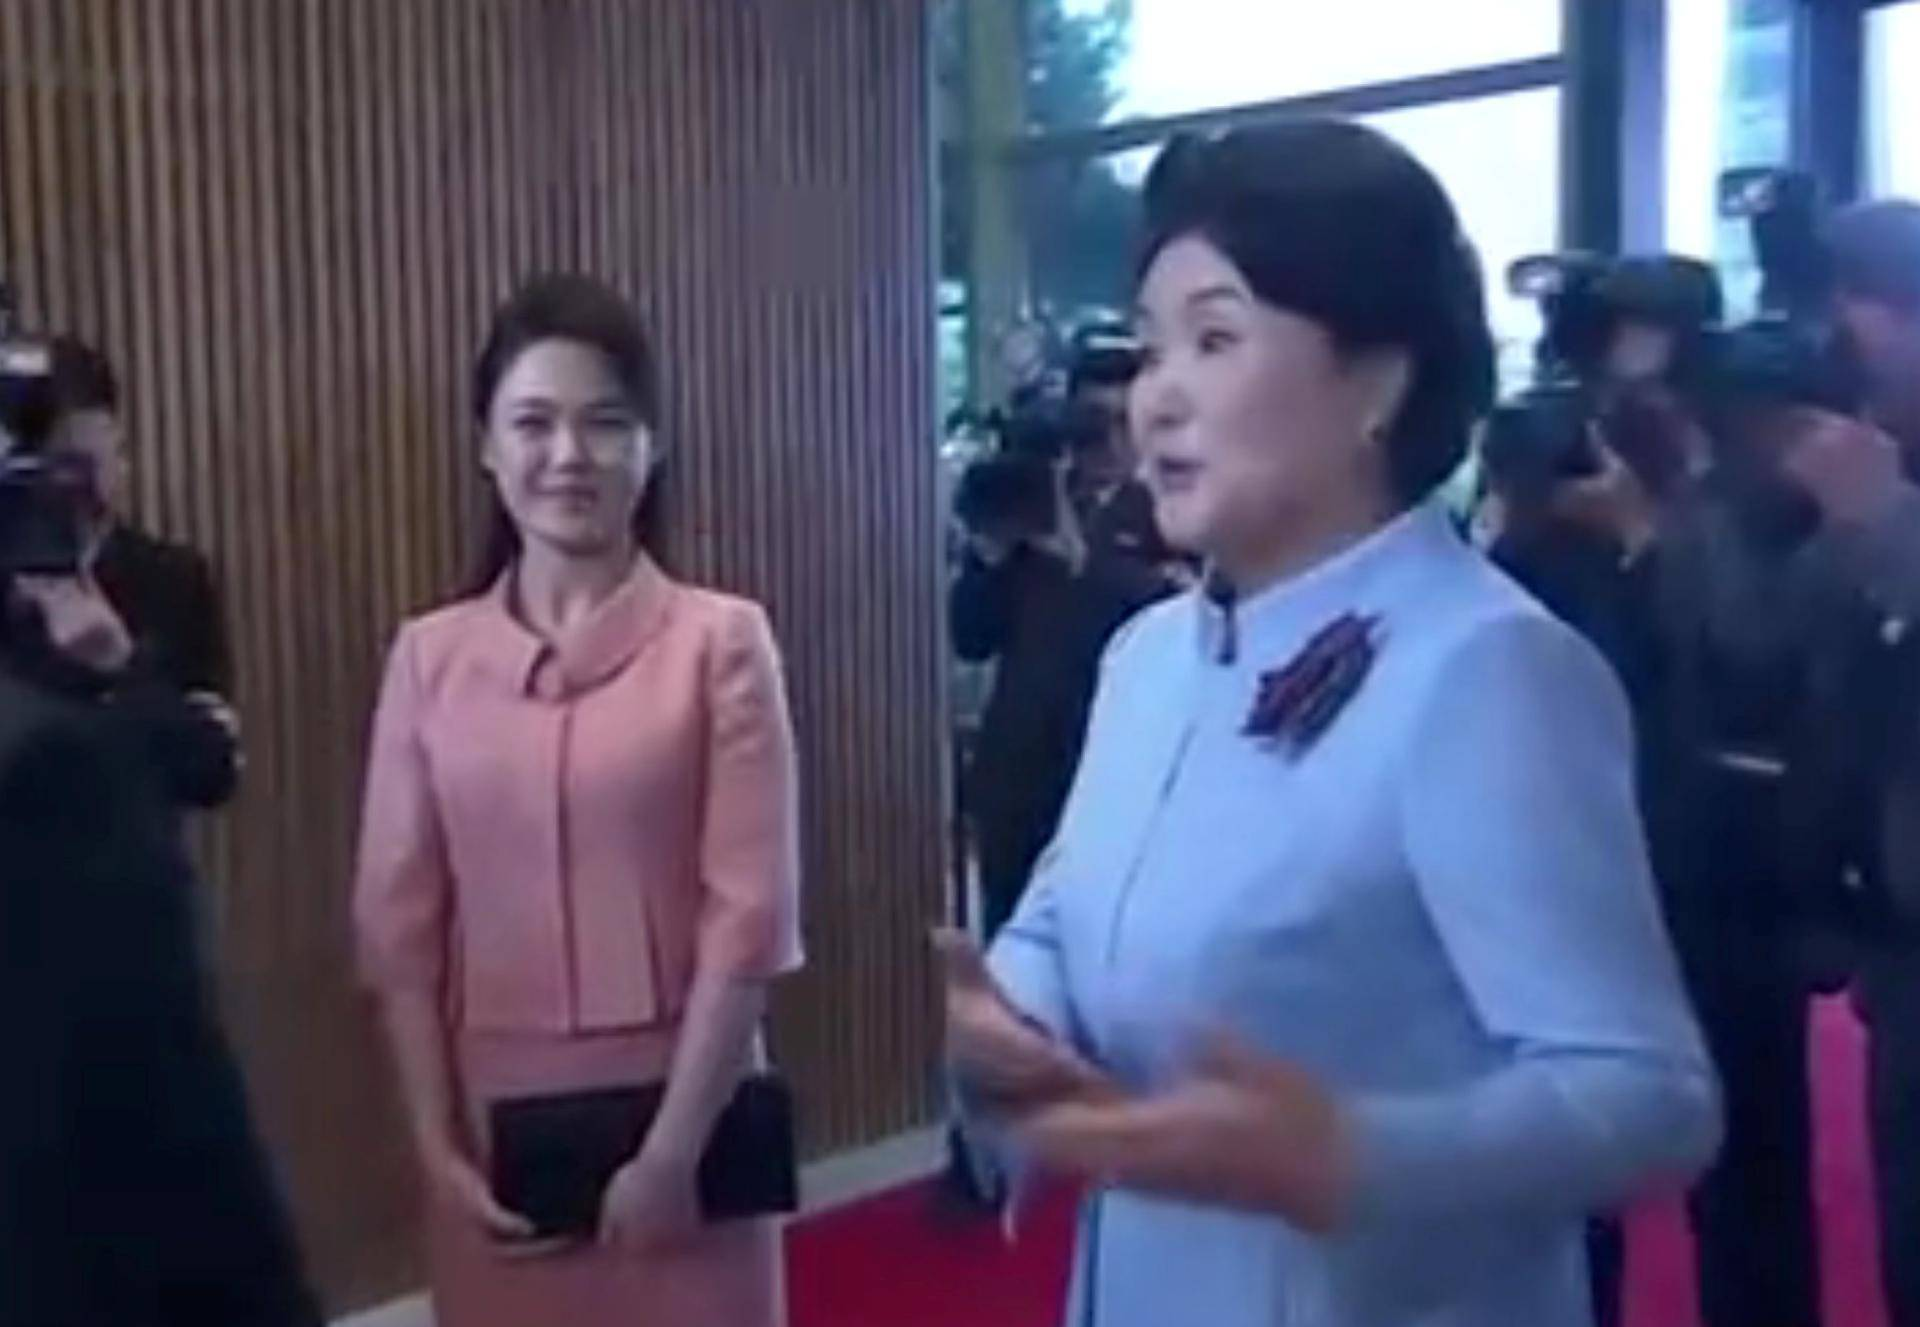 North Korean leader Kim Jong Un's wife, Ri Sol Ju, arrives to join the inter-Korea dinner at the truce village of Panmunjom